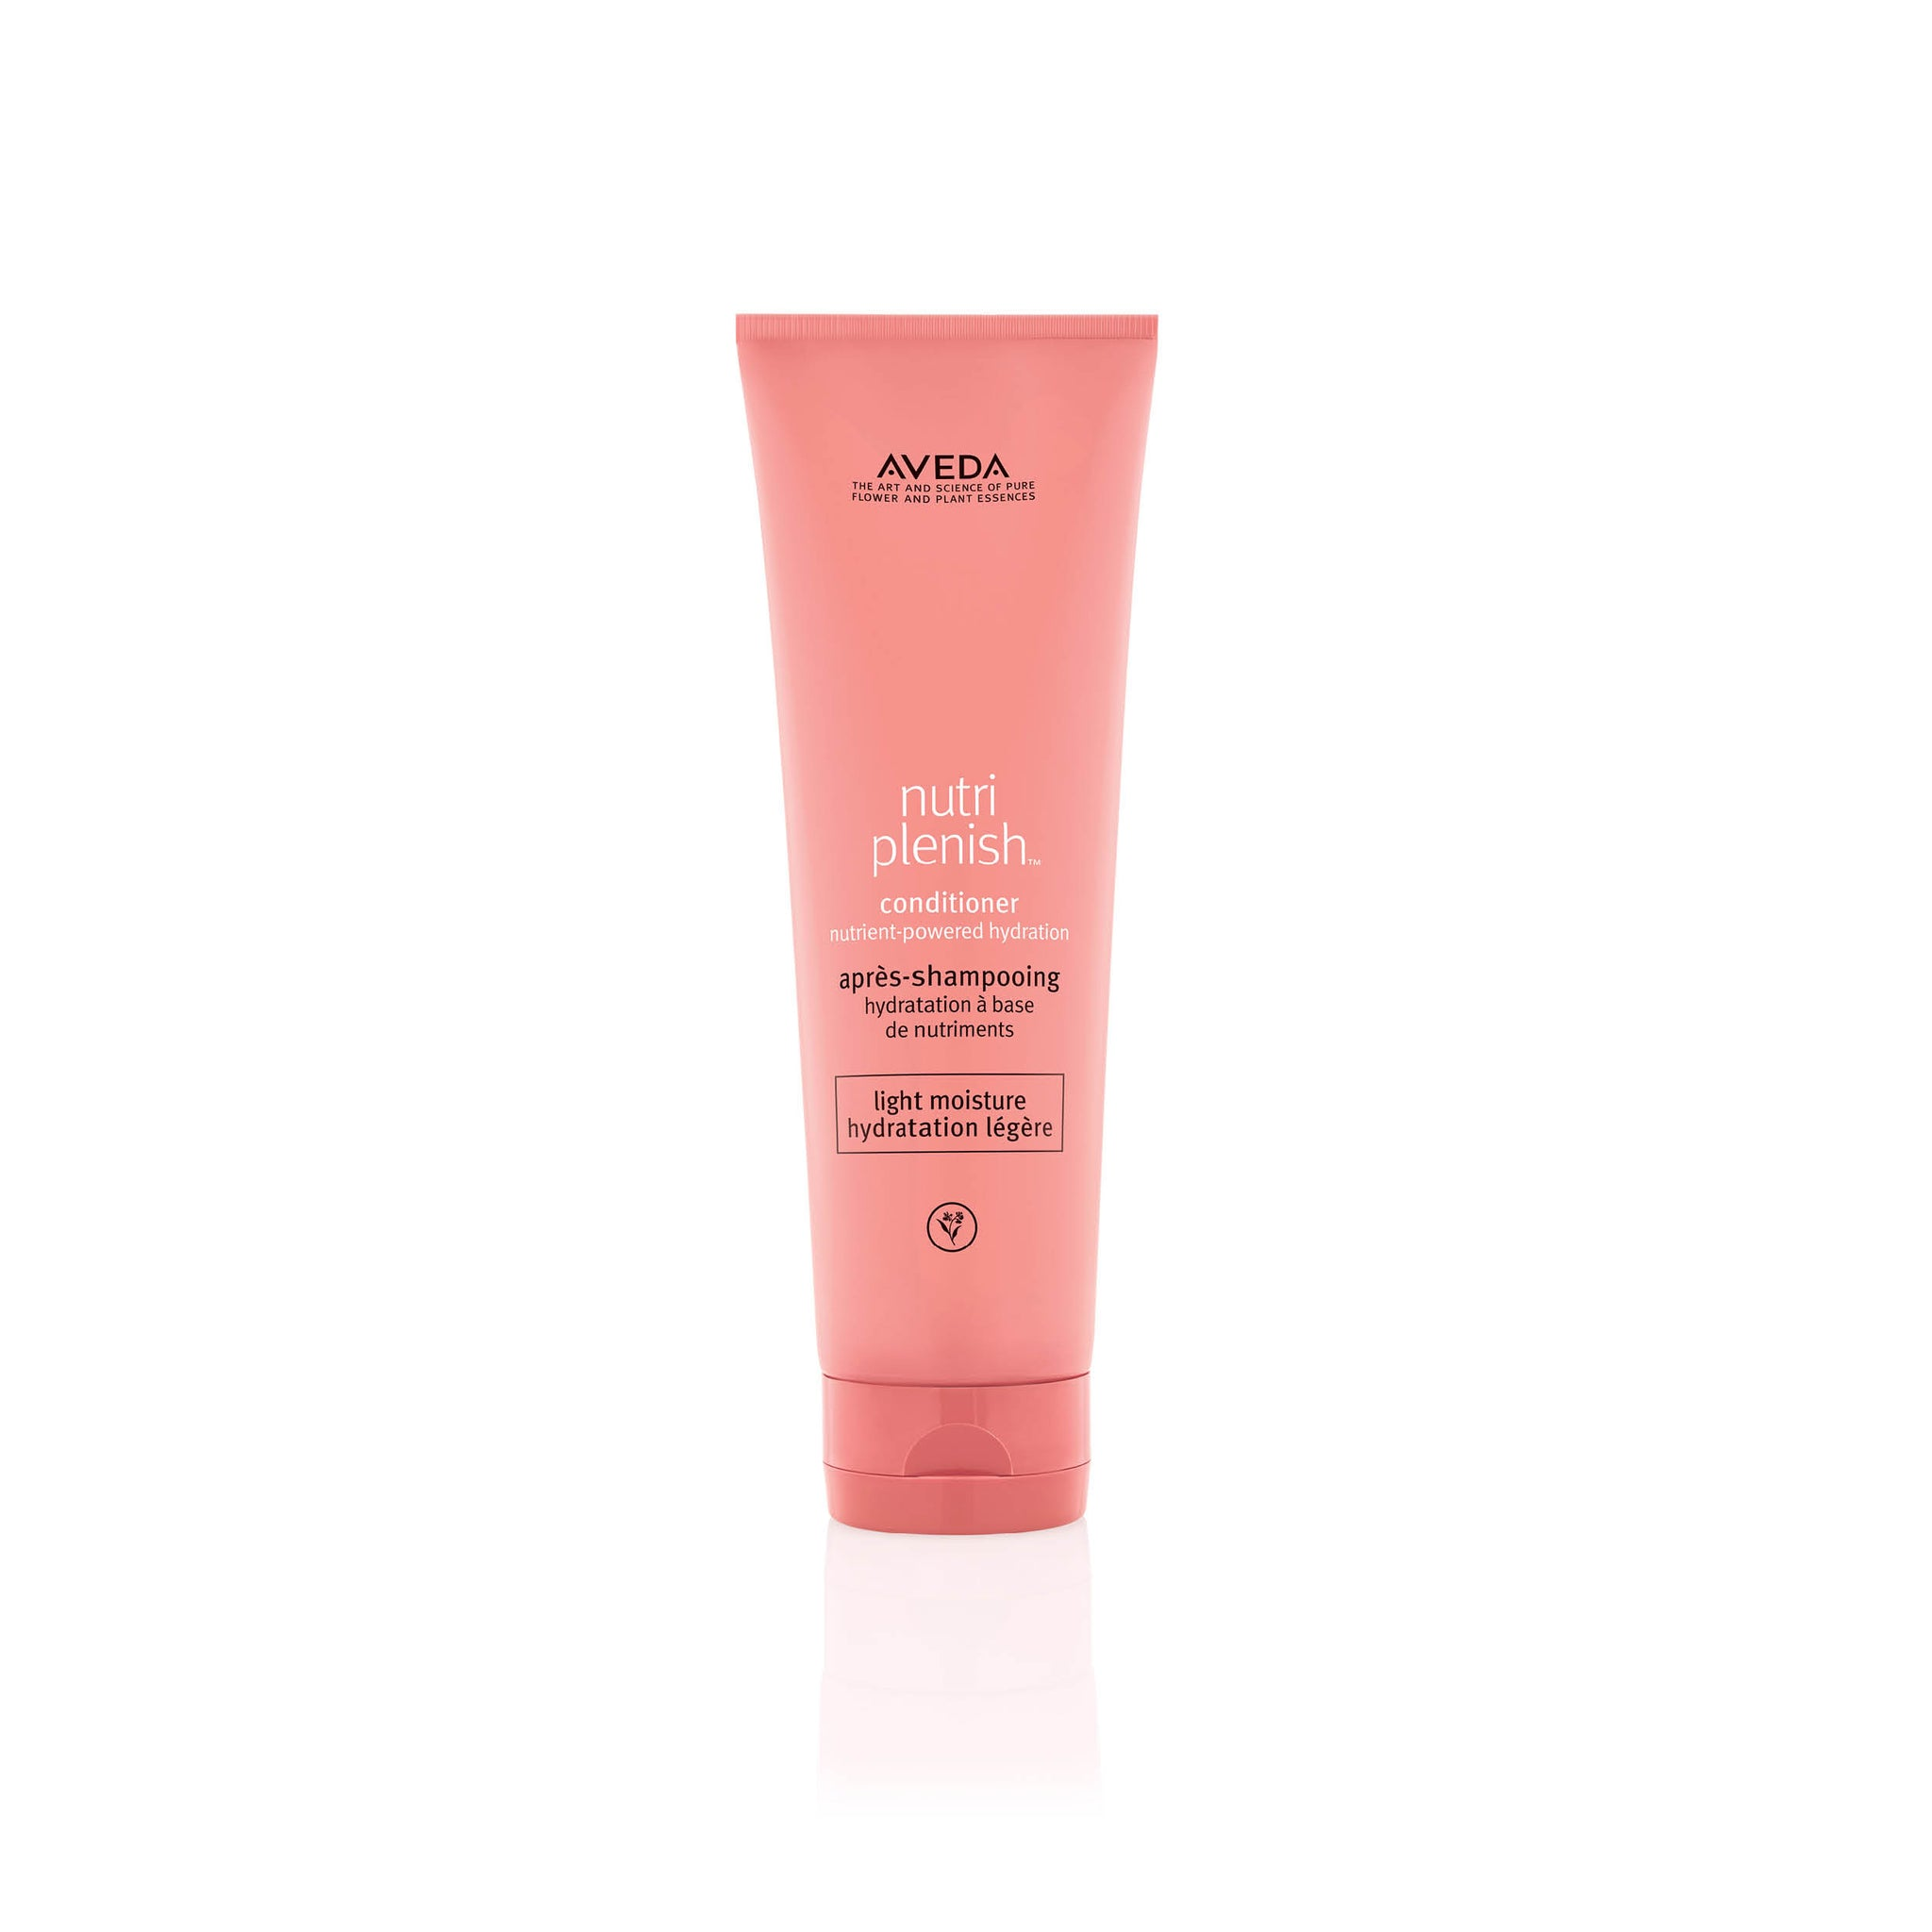 Aveda Nutriplenish Hydrating Light Moisture Conditioner